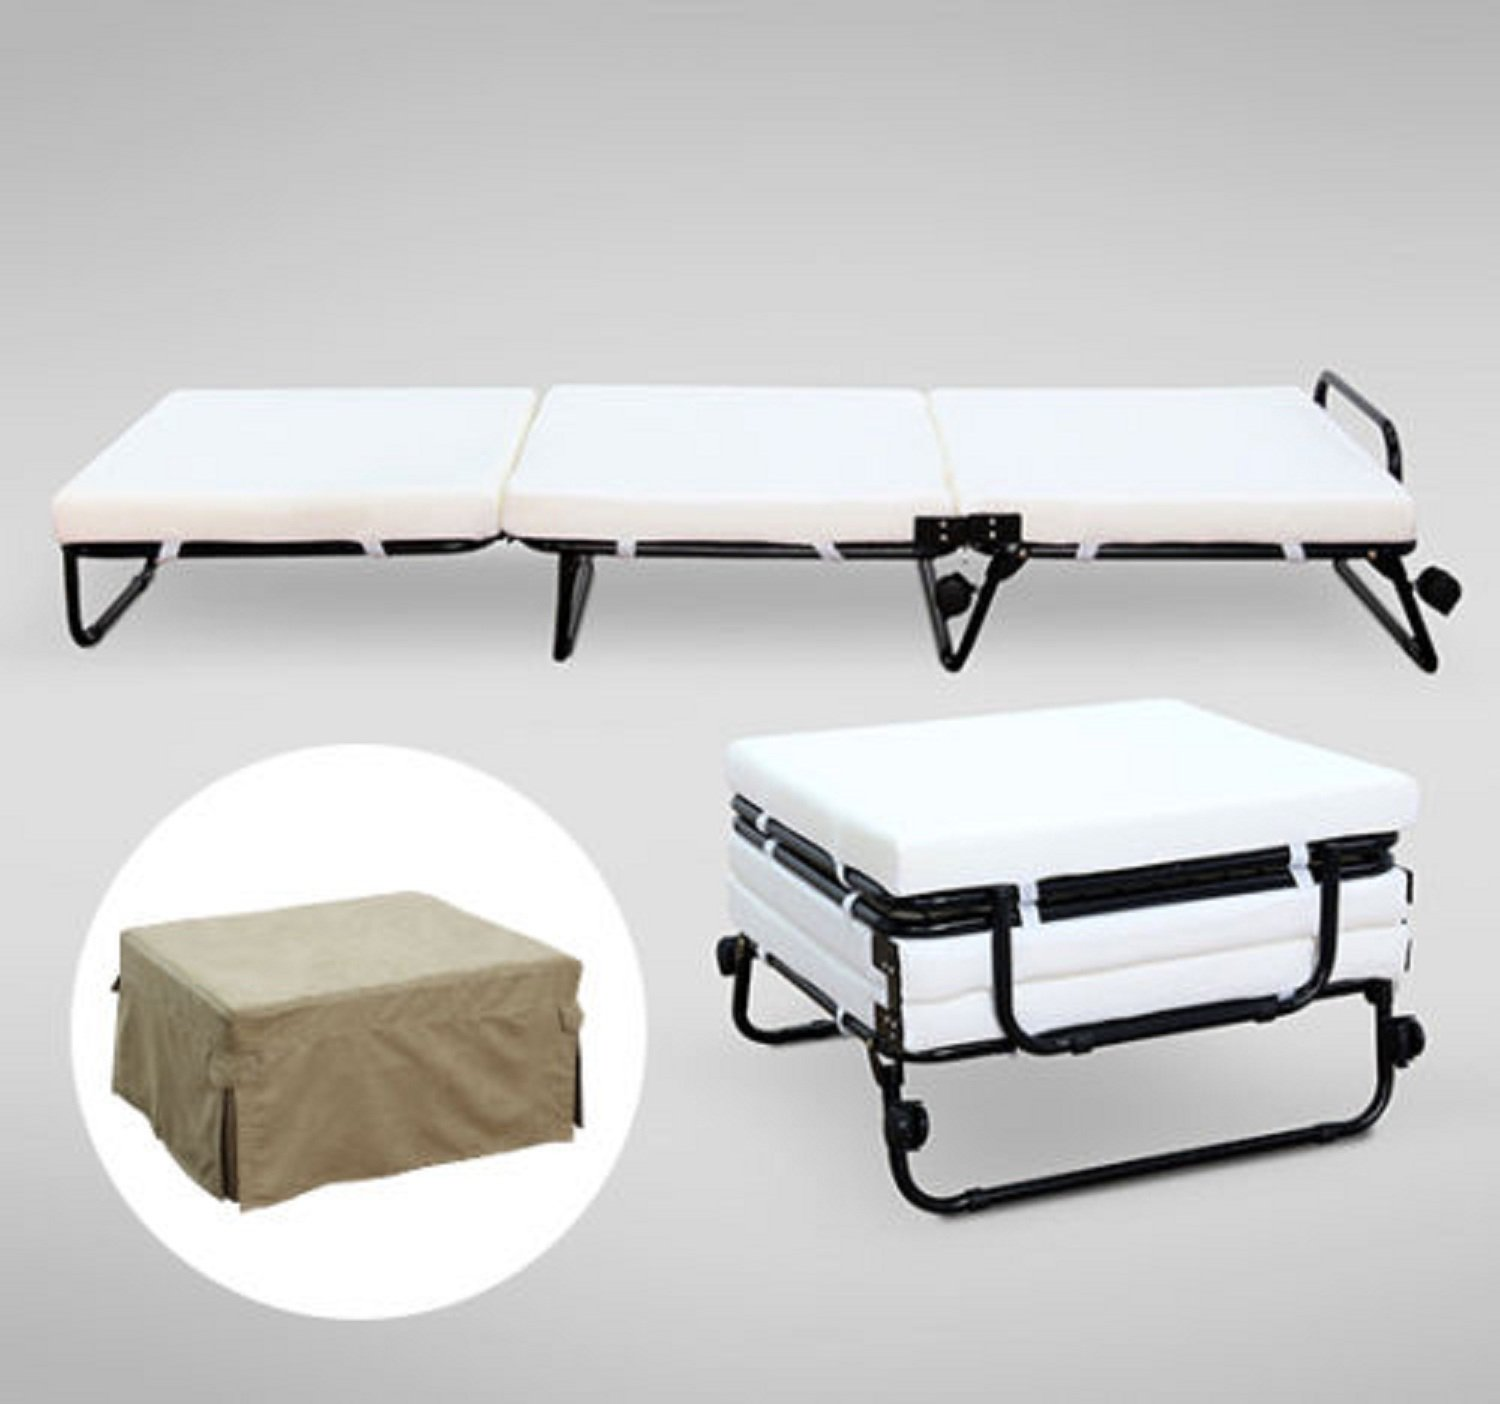 Gracelove Folding Convertible Sofa Bed Ottoman Couch